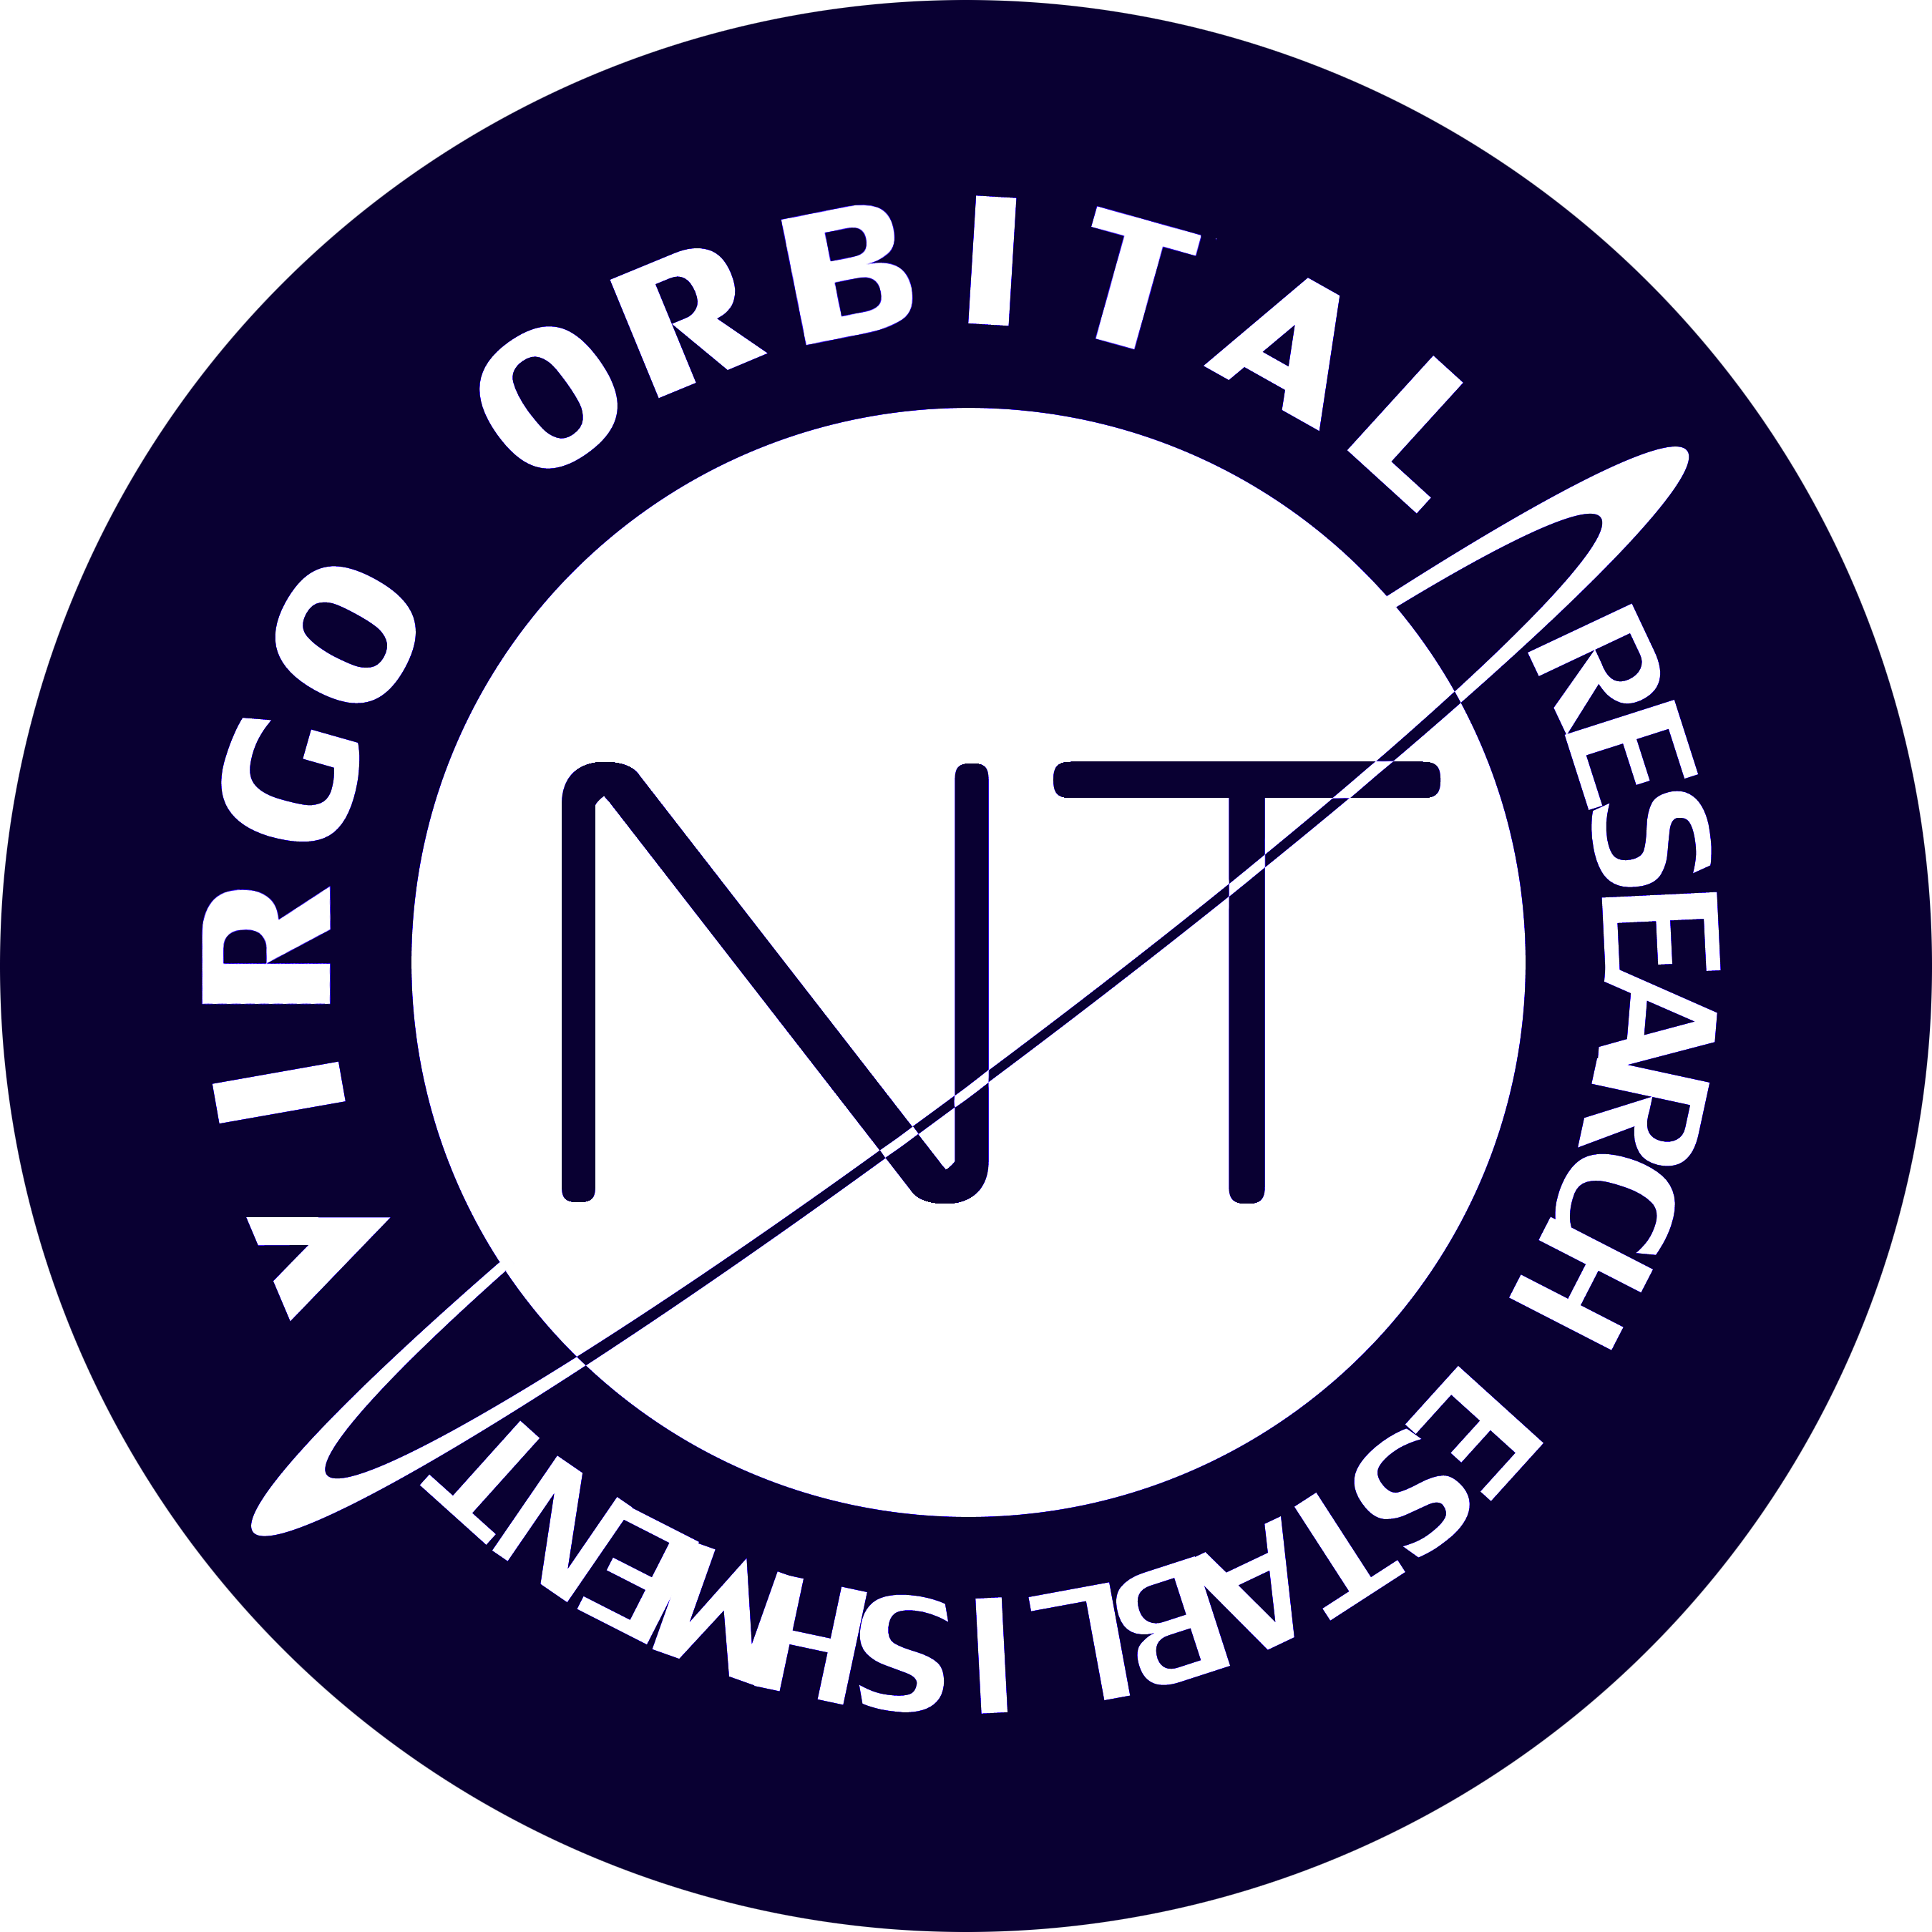 Virgo Orbital Research Establishment Logo